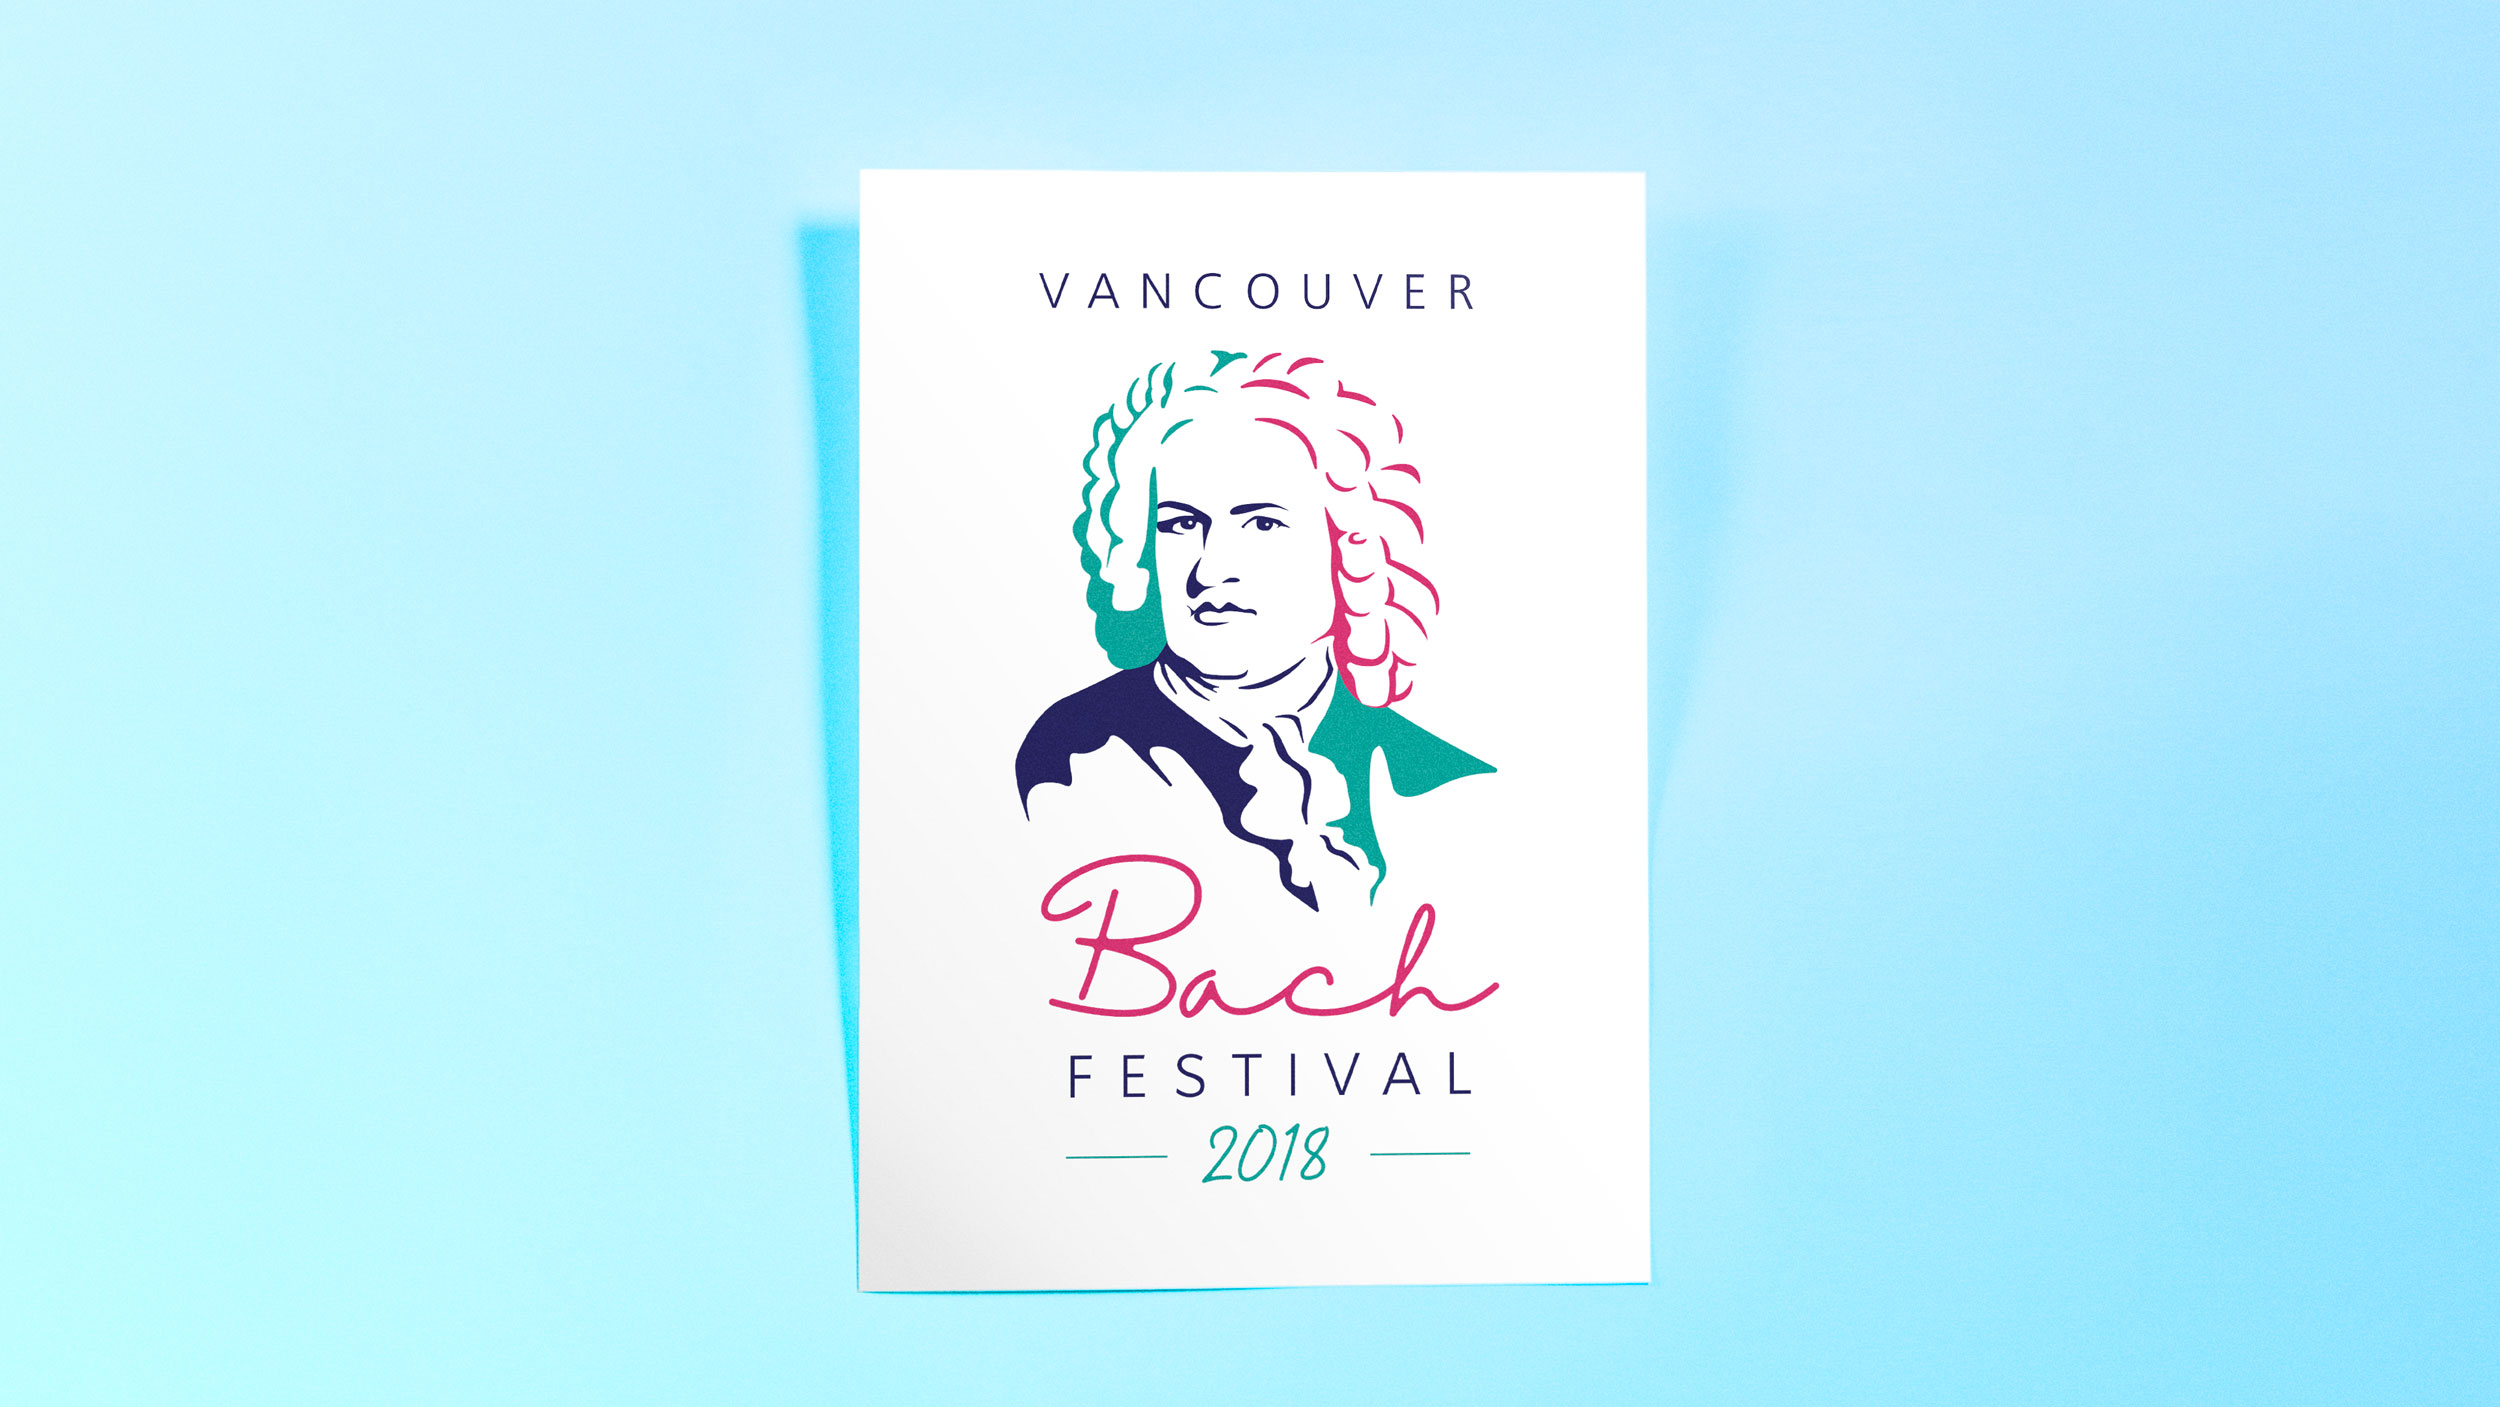 Vancouver Bach Music Festival Poster